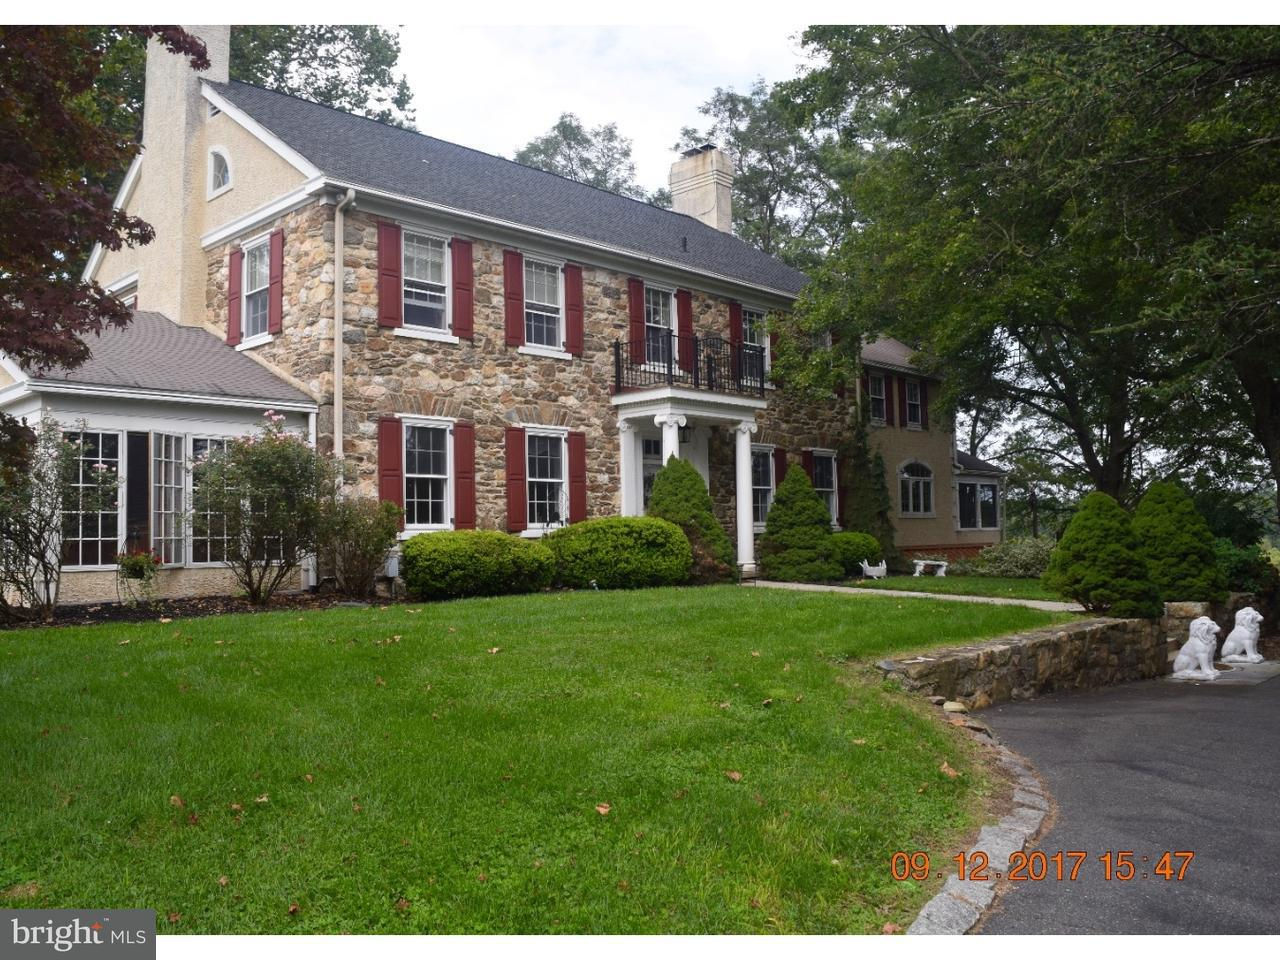 Single Family Home for Sale at 2003 CHESTERVILLE Road Lincoln University, Pennsylvania 19352 United States